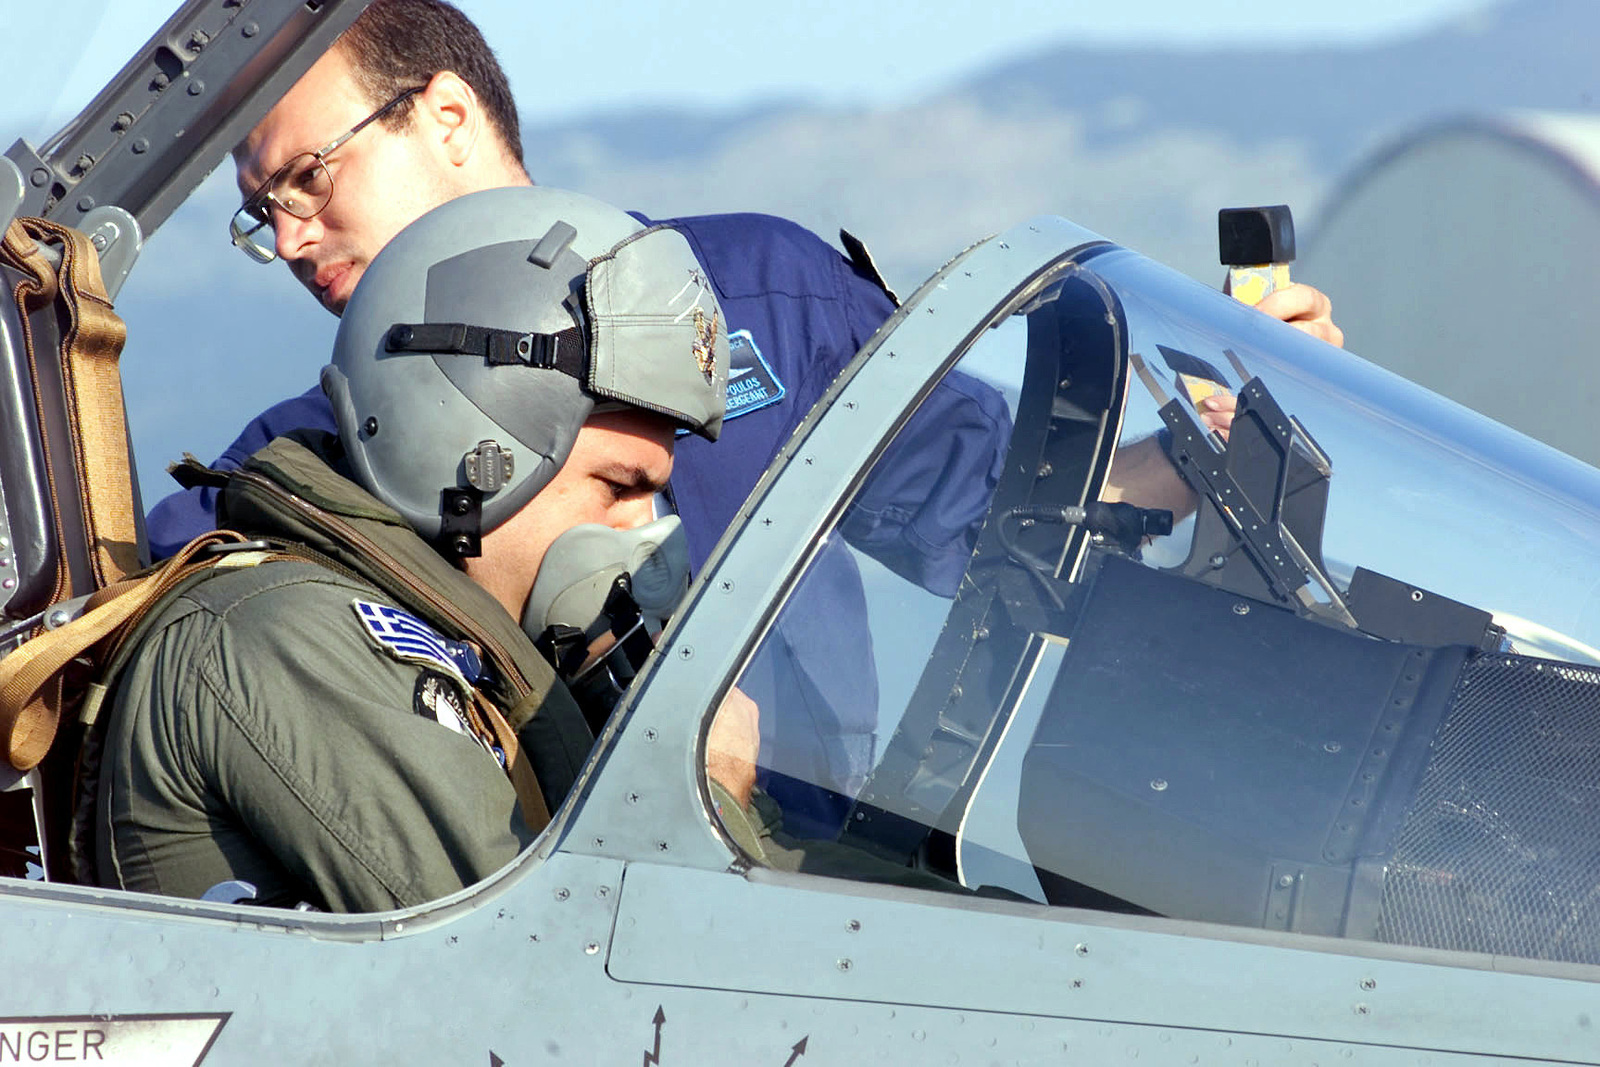 Left side profile medium close-up shot as Greek Air Force STAFF Sergeant John Papadopoulos (background), an aircraft mechanic of the Hellenic (Greek) Air Force, 114th Composite Group, 331st Tactical Fighter Wing, Greece, assist Captain Stefanos Ampouleris strap into his Mirage 2000 Fighter. The Hellenic unit is at Aviano Air Base, to train with the 510th Fighter Squadron. The Mirages provide valuable dissimilar training allowing 510th Fighter pilots the opportunity to train against other types of aircraft. (Duplicate image, see also DF-SD-01-06167 or search 000816-F-4728F-003)